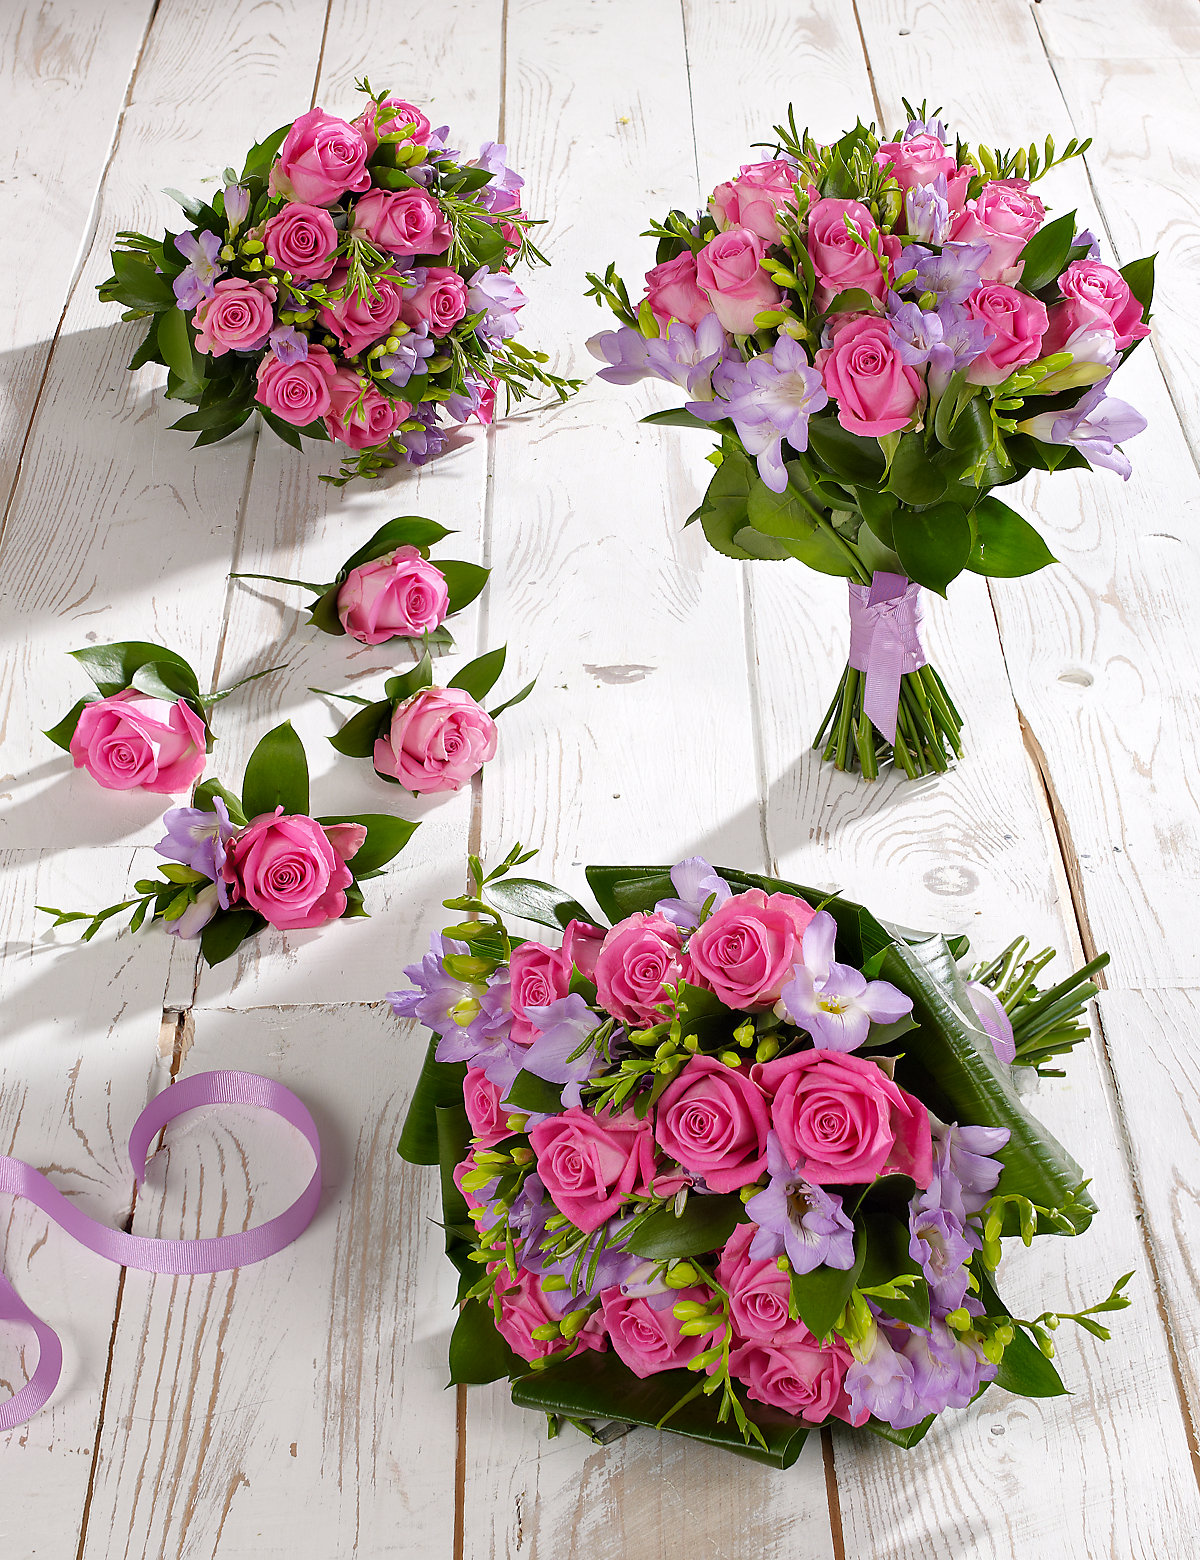 Pink & Lilac Rose & Freesia Wedding Flowers  Collection 2